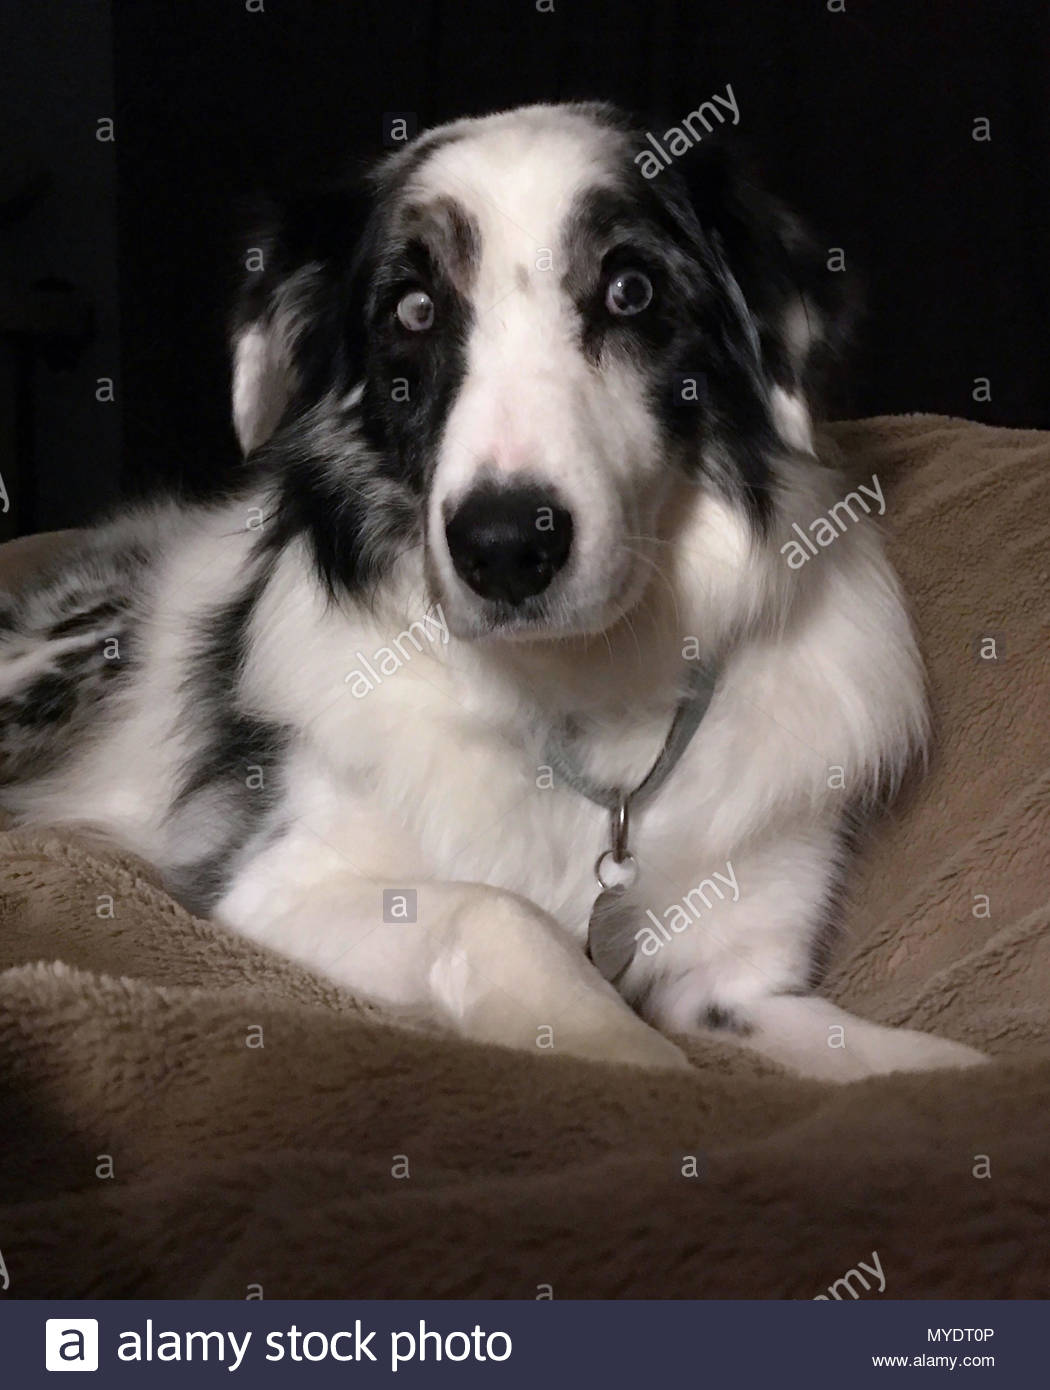 A double blue merle Australian Shepherd lies on a beige blanket and looks at the camera. - Stock Image